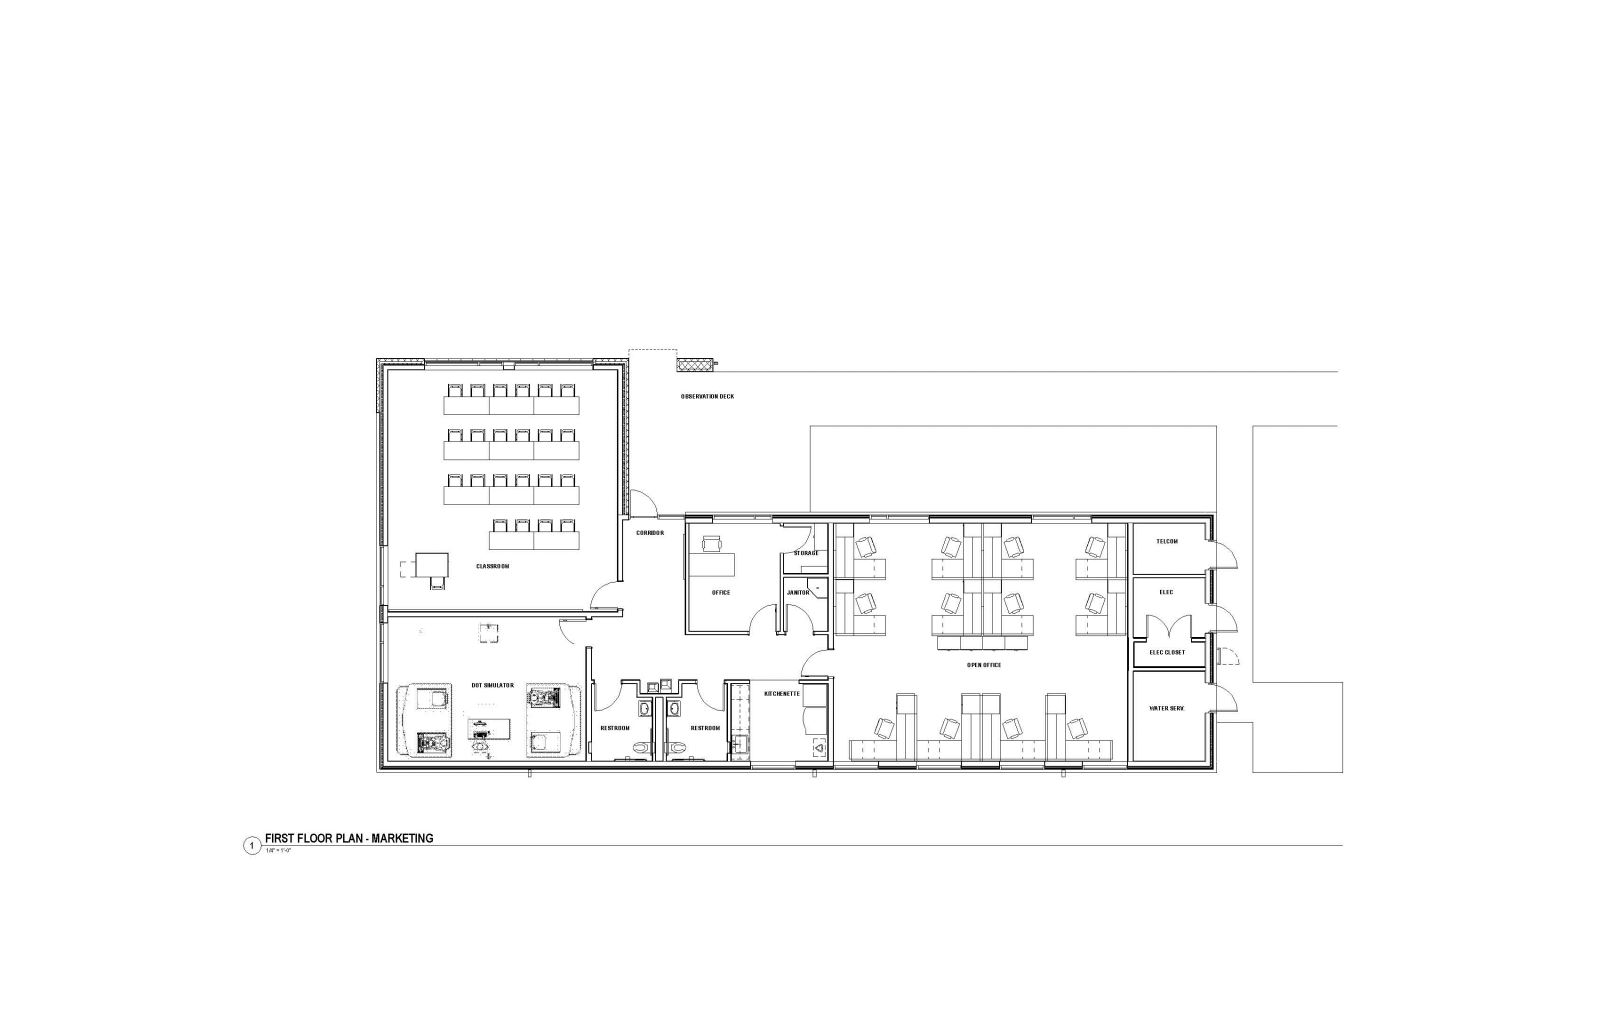 MASP & PSTA Project 3: Public Safety Training Academy - PSTA Skills Pad Building Floor Plan